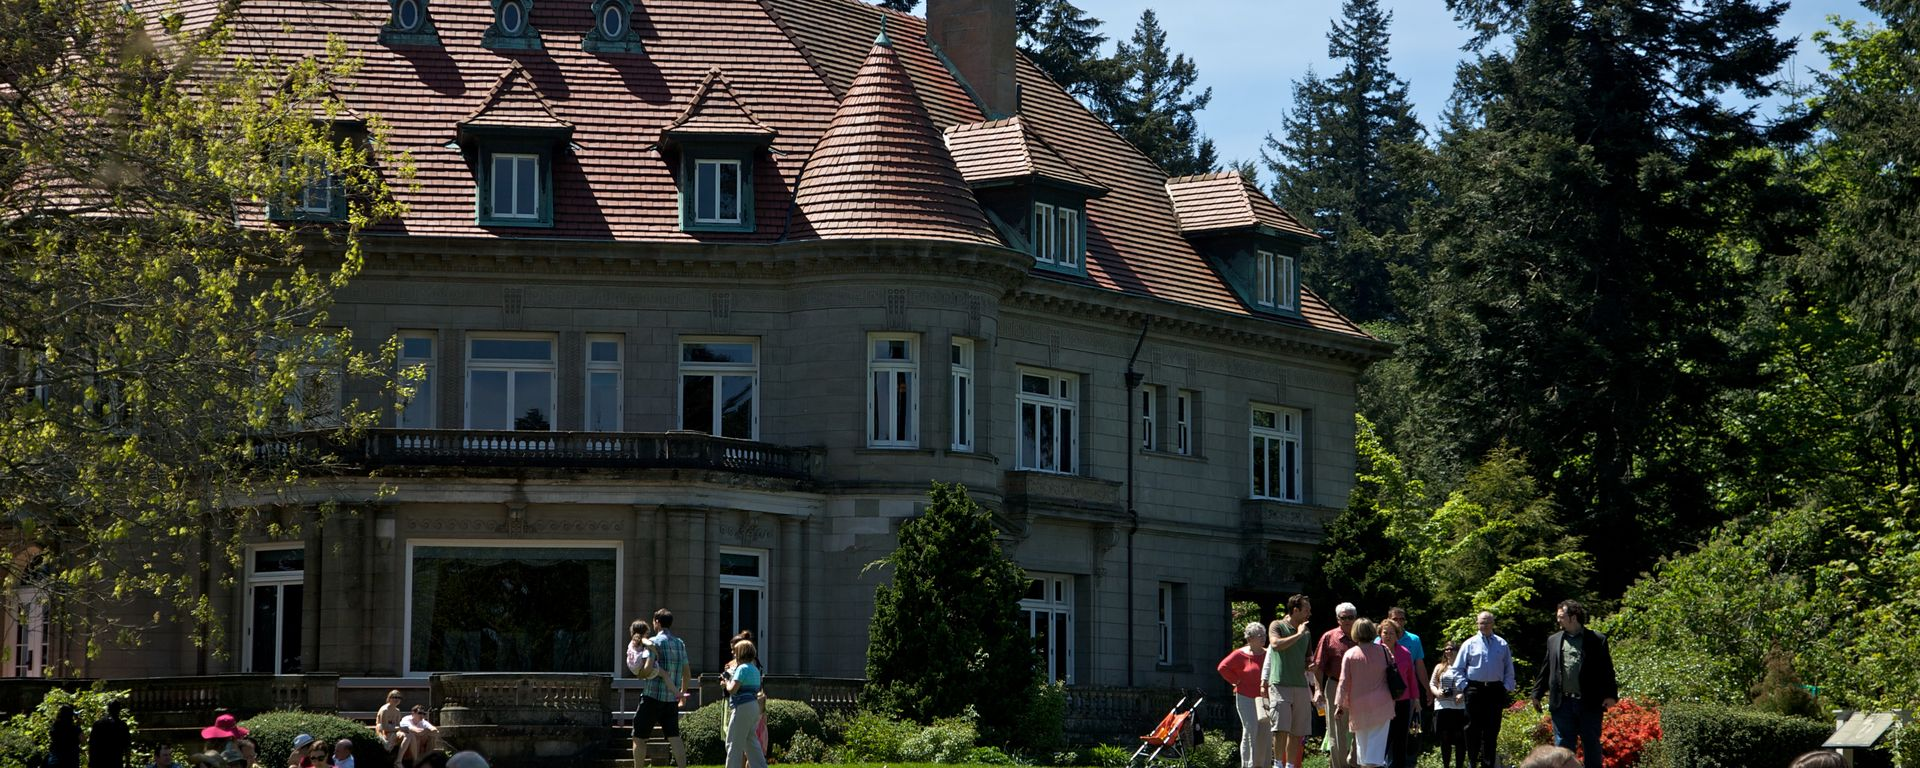 Pittock Mansion in the Summer